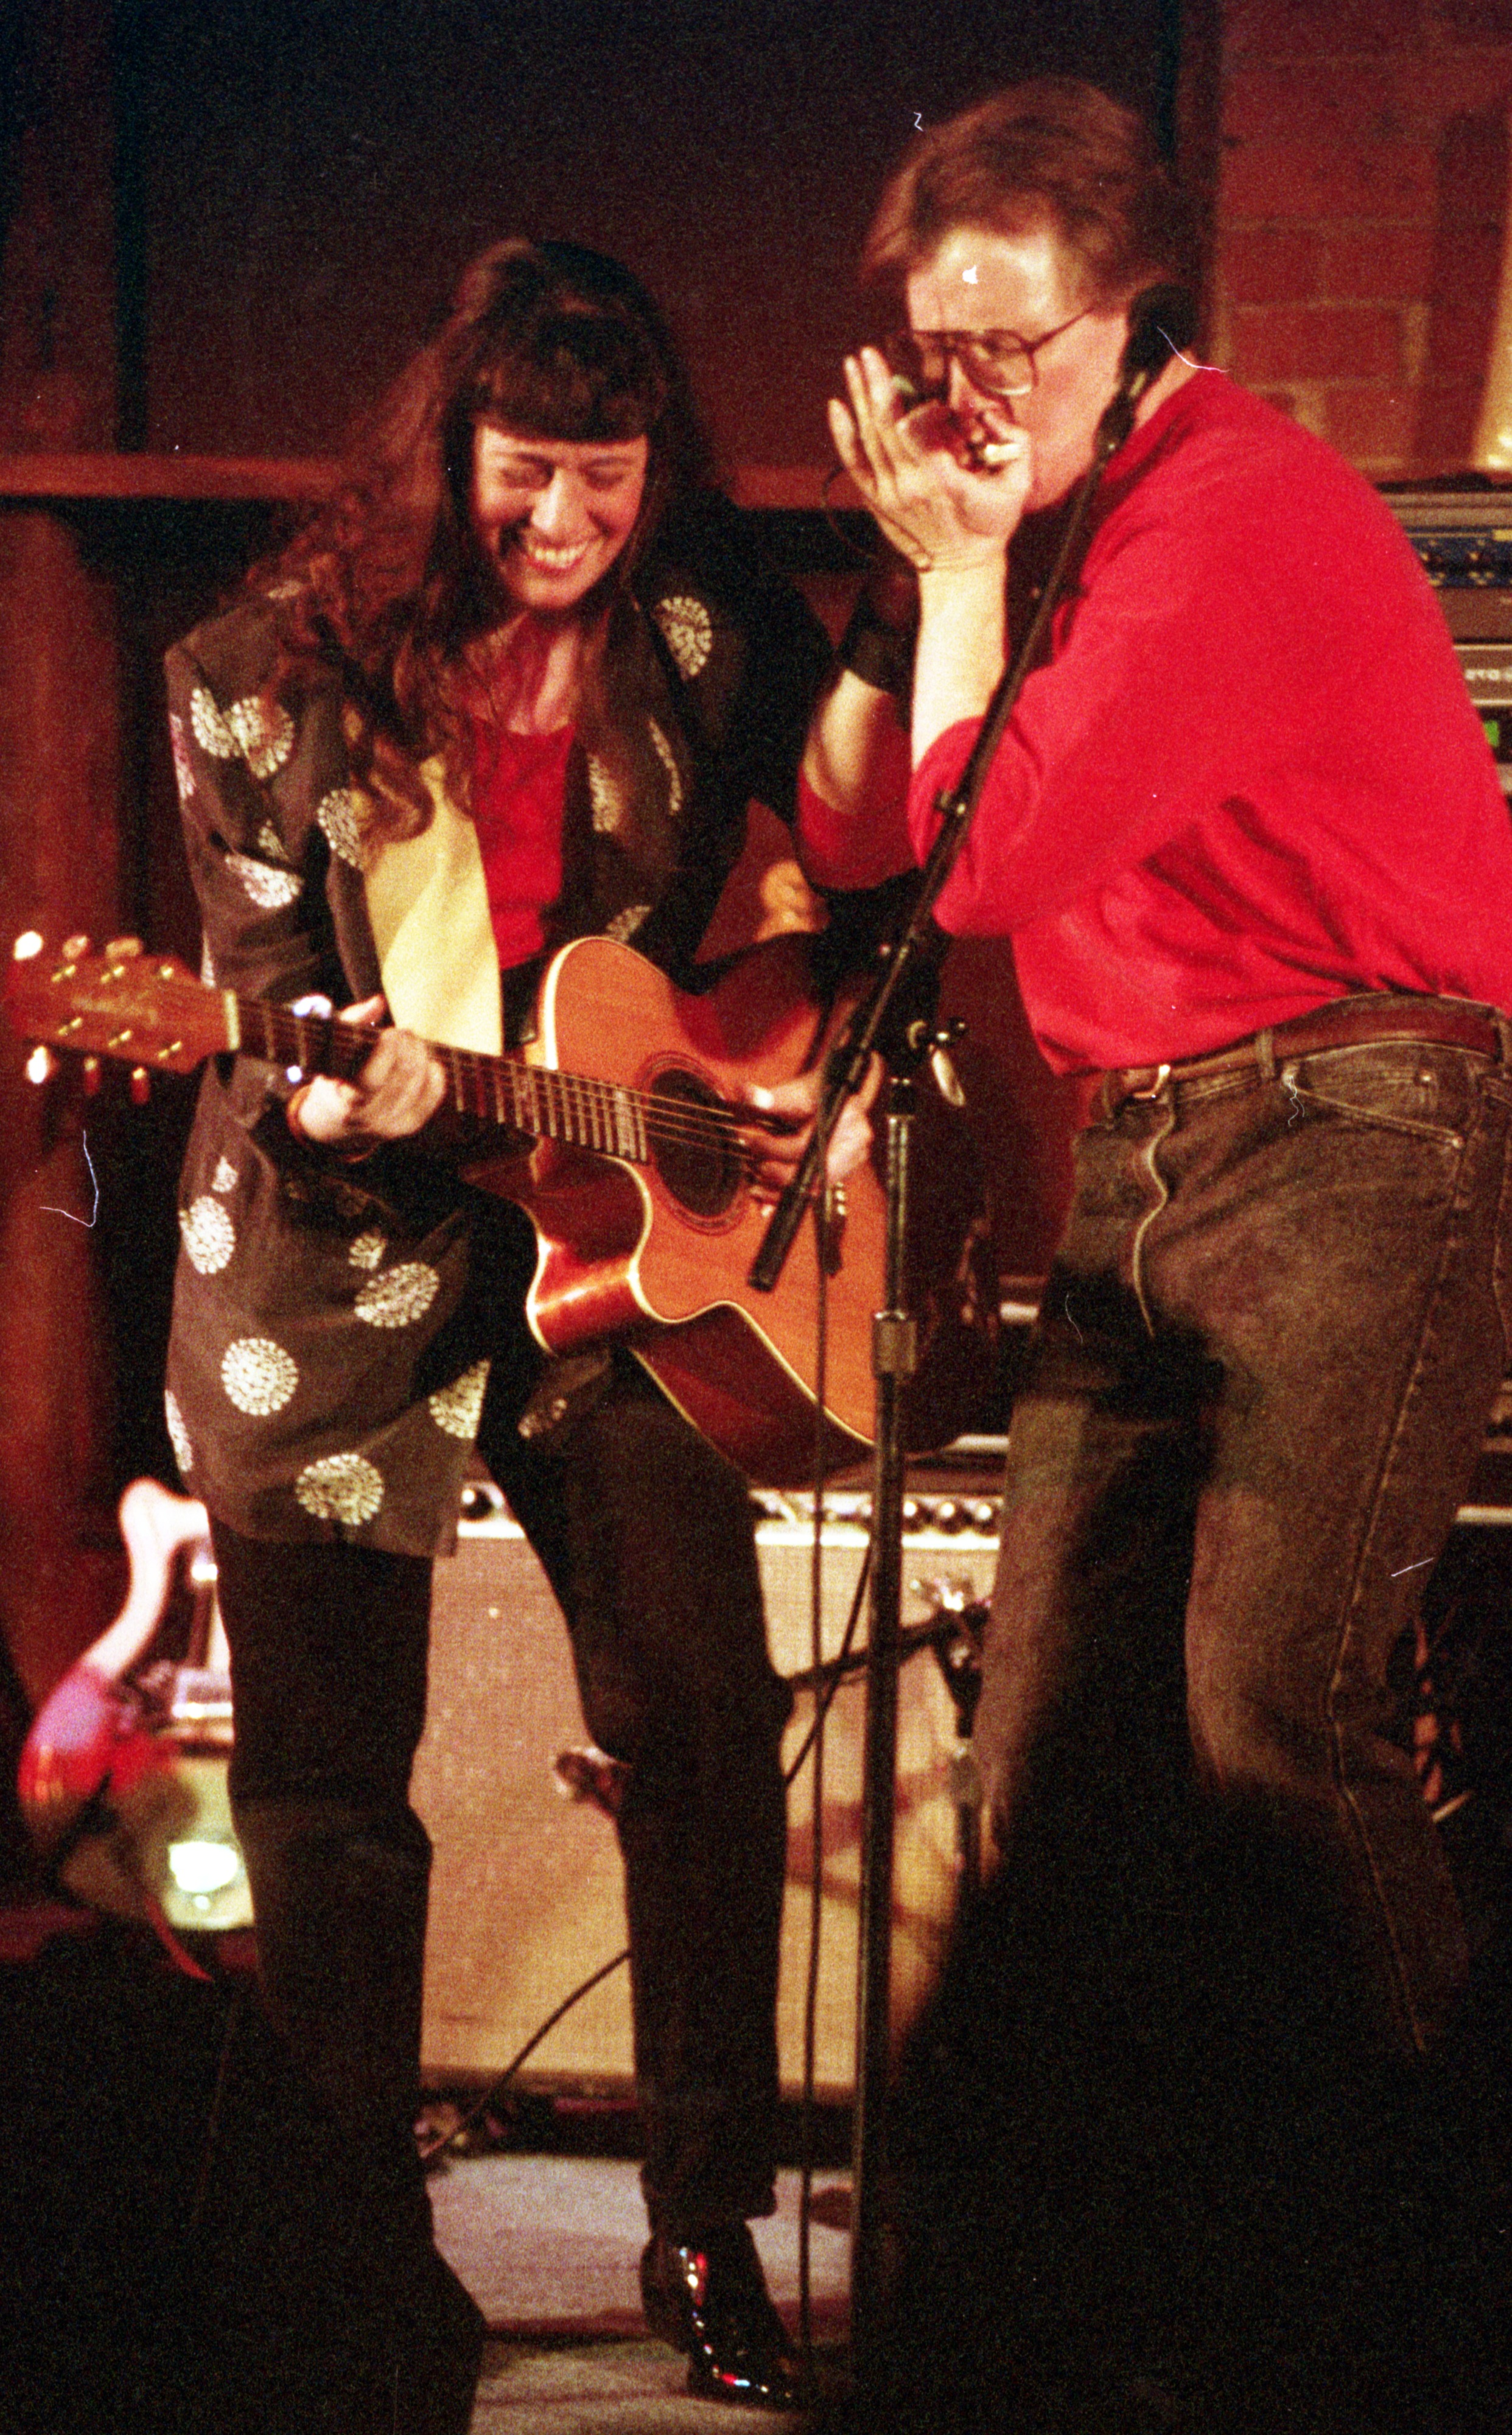 Peter 'Madcat' Ruth & Shari Kane Perform At The Ark, January 10, 1993 image